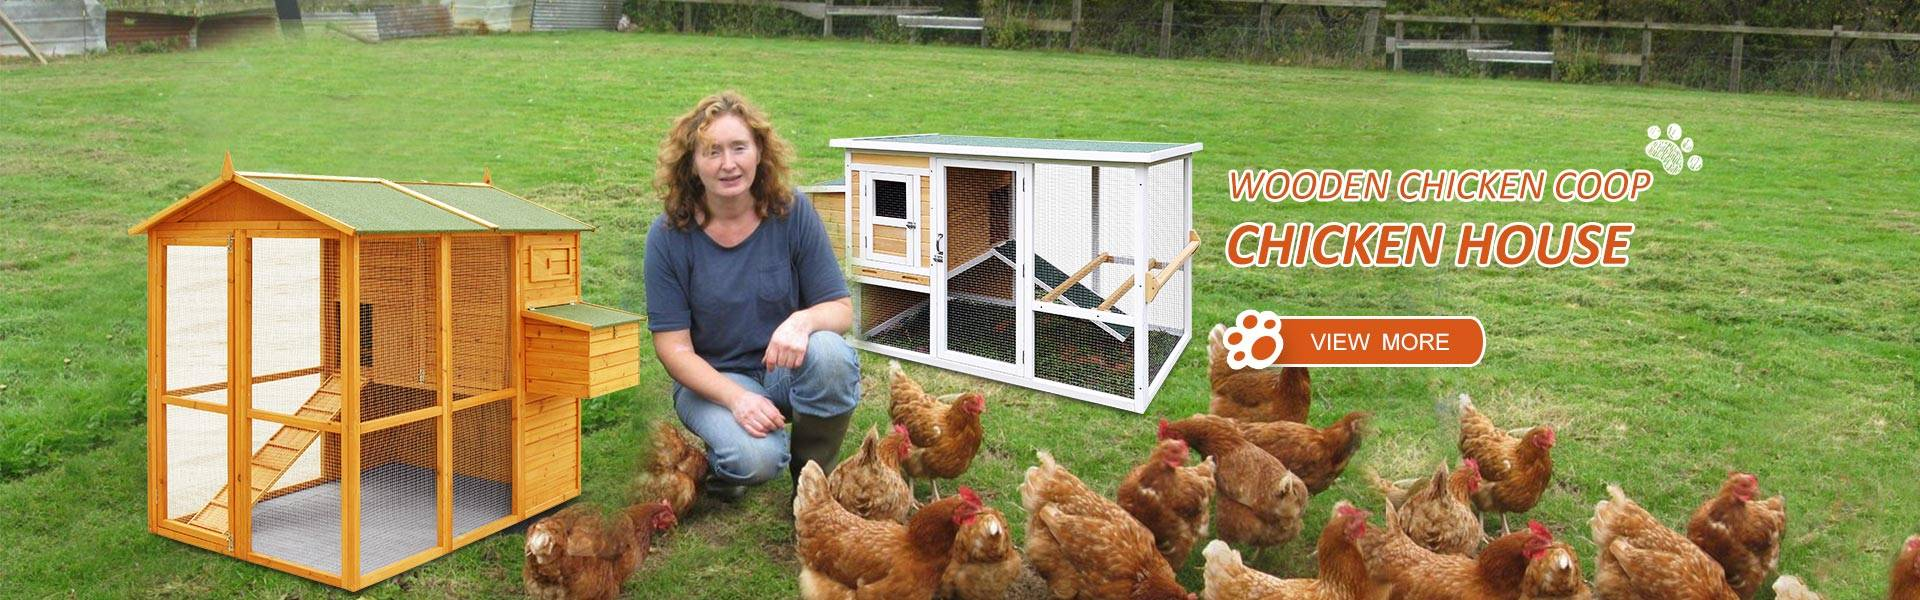 Wooden Chicken coop / chicken house